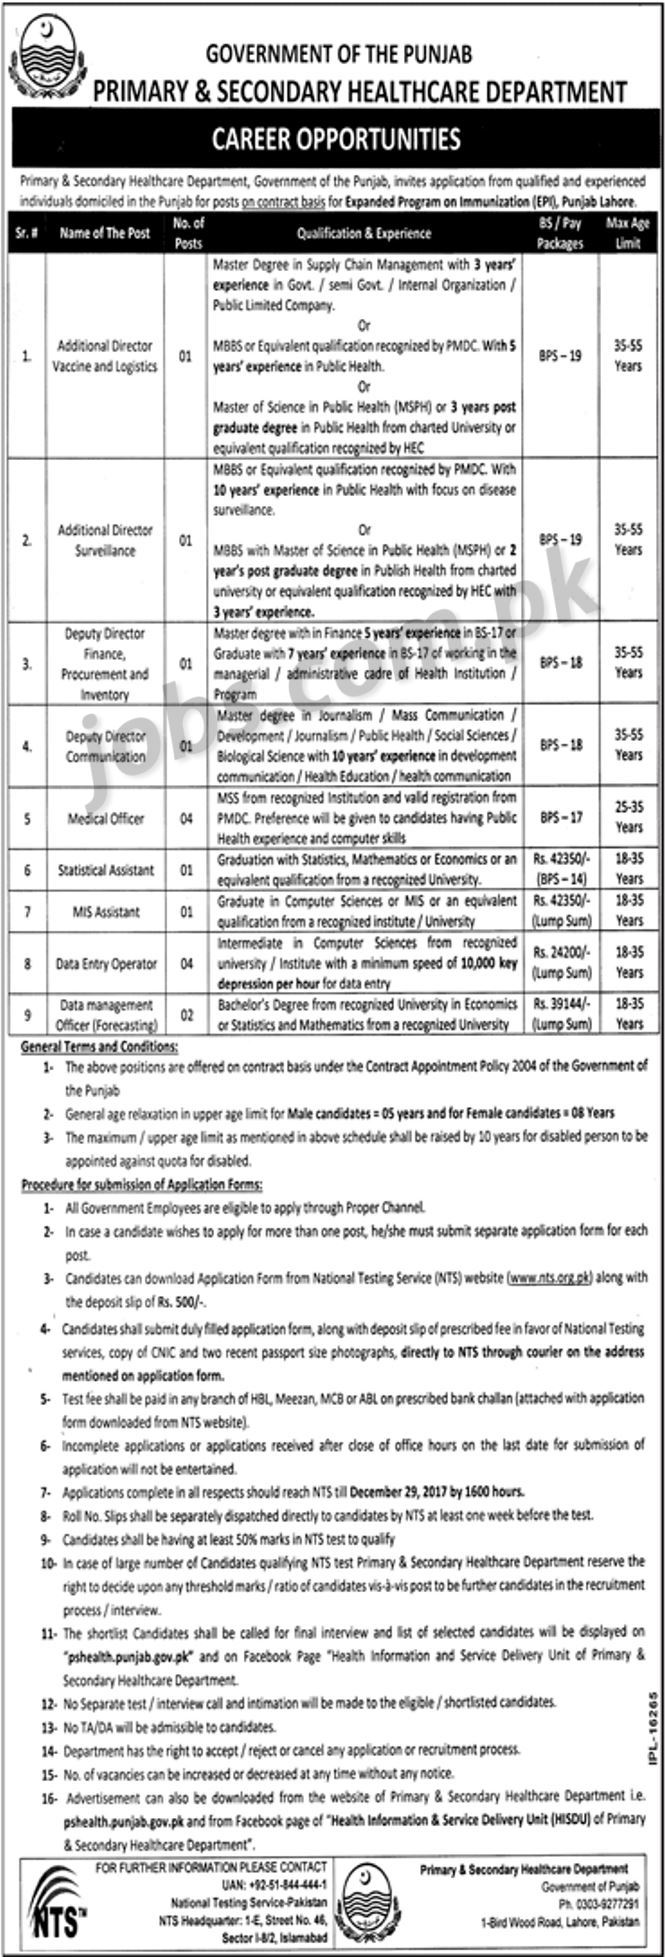 psh2-jn-nts Ogdcl Application Form For Job on free generic, blank generic, part time,